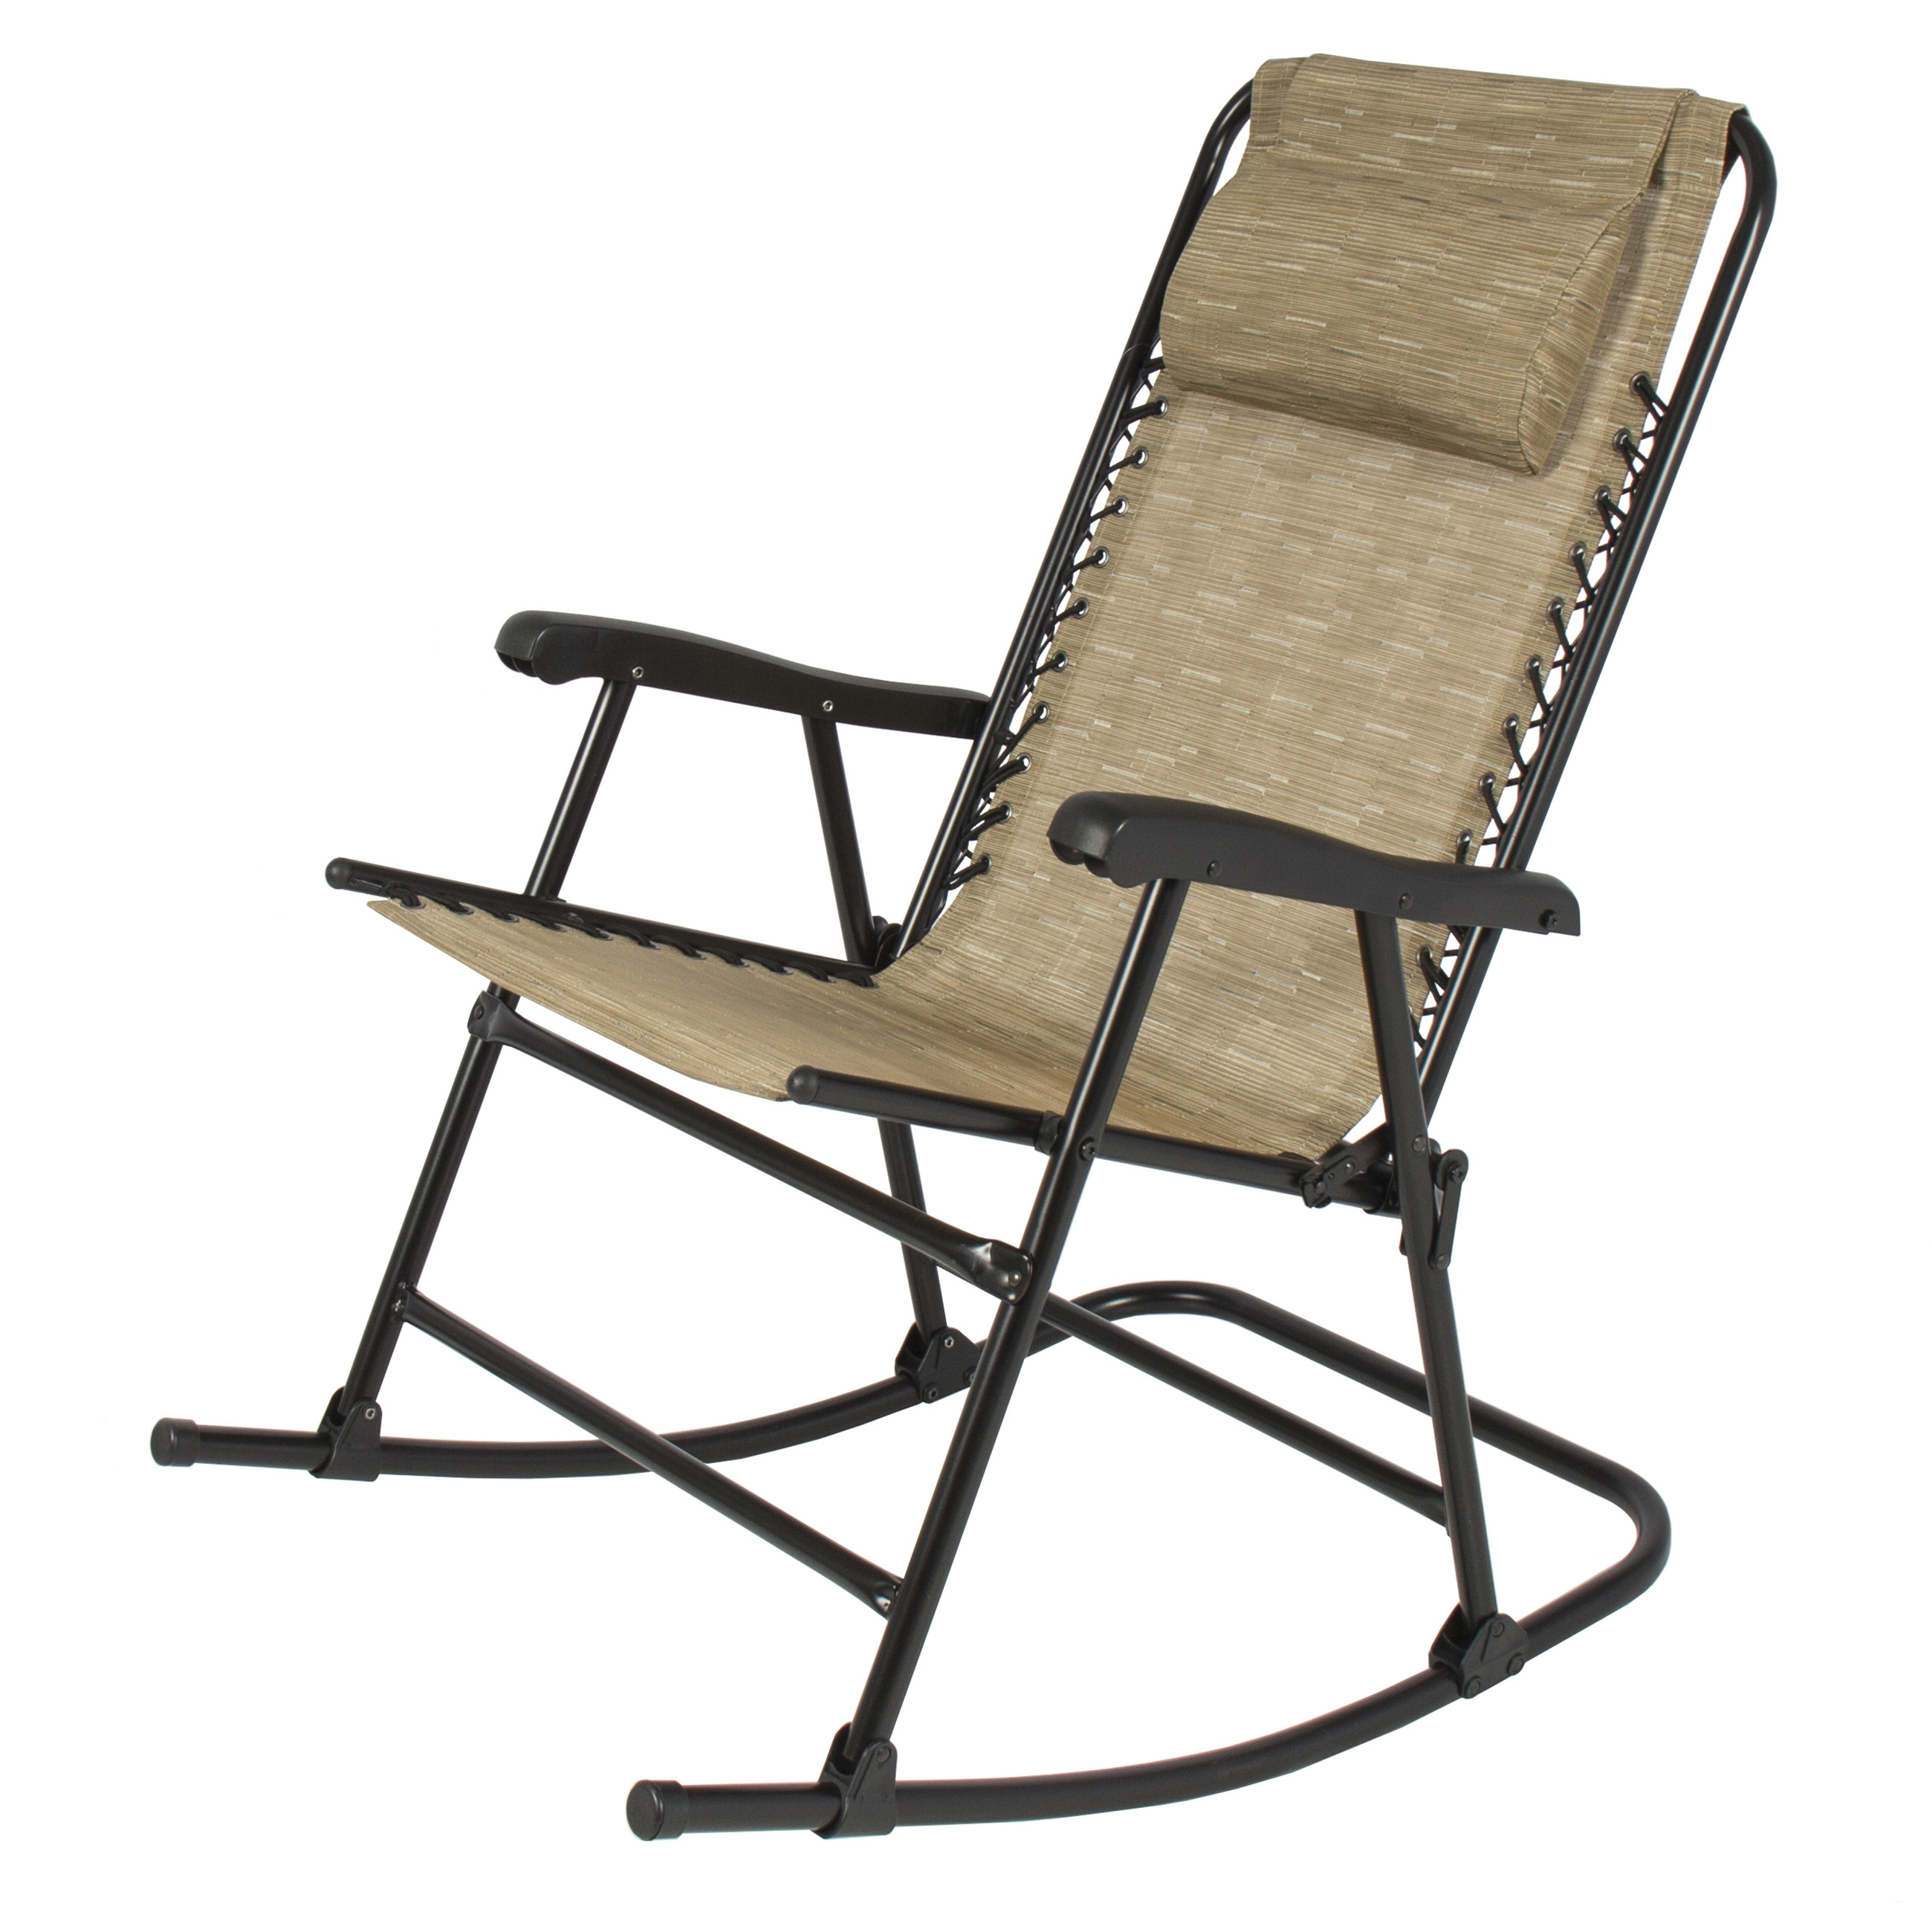 Widely Used Outdoor Patio Rocking Chairs Inside Red Outdoor Rocking Chair – Nice Chair Lovely Patio Rocking Chairs (View 12 of 15)